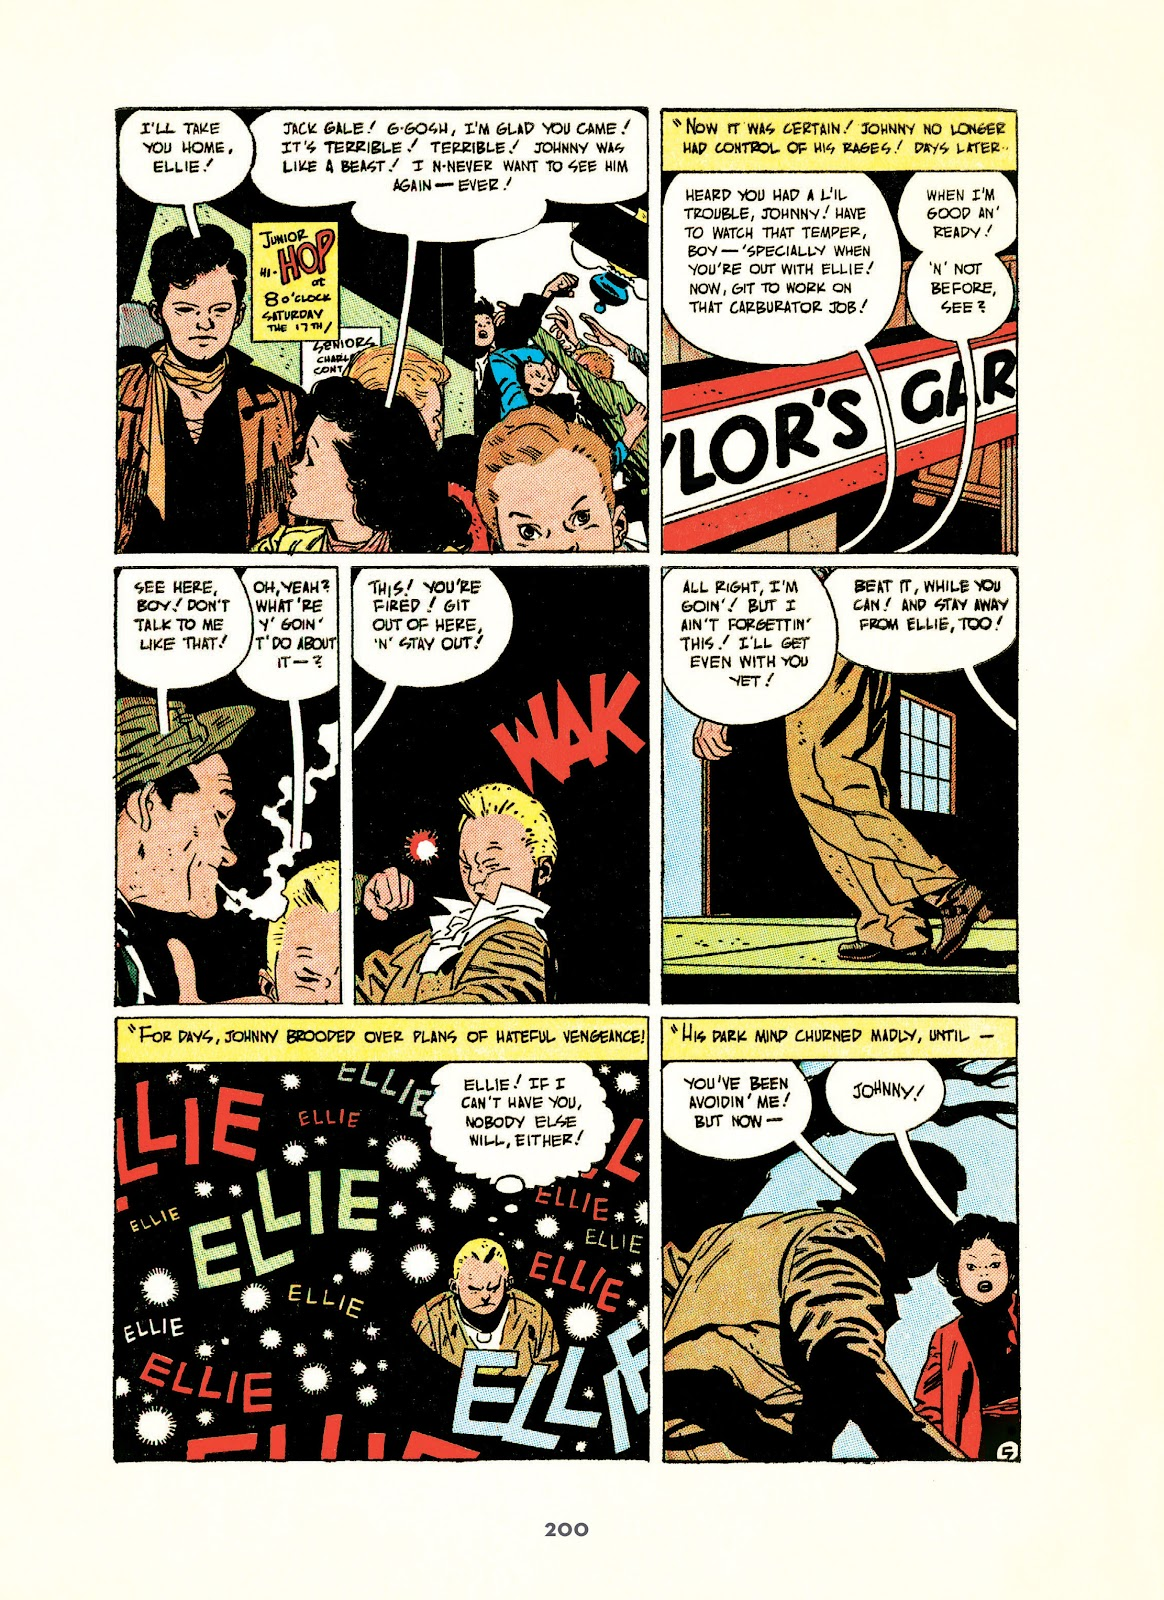 Read online Setting the Standard: Comics by Alex Toth 1952-1954 comic -  Issue # TPB (Part 3) - 1